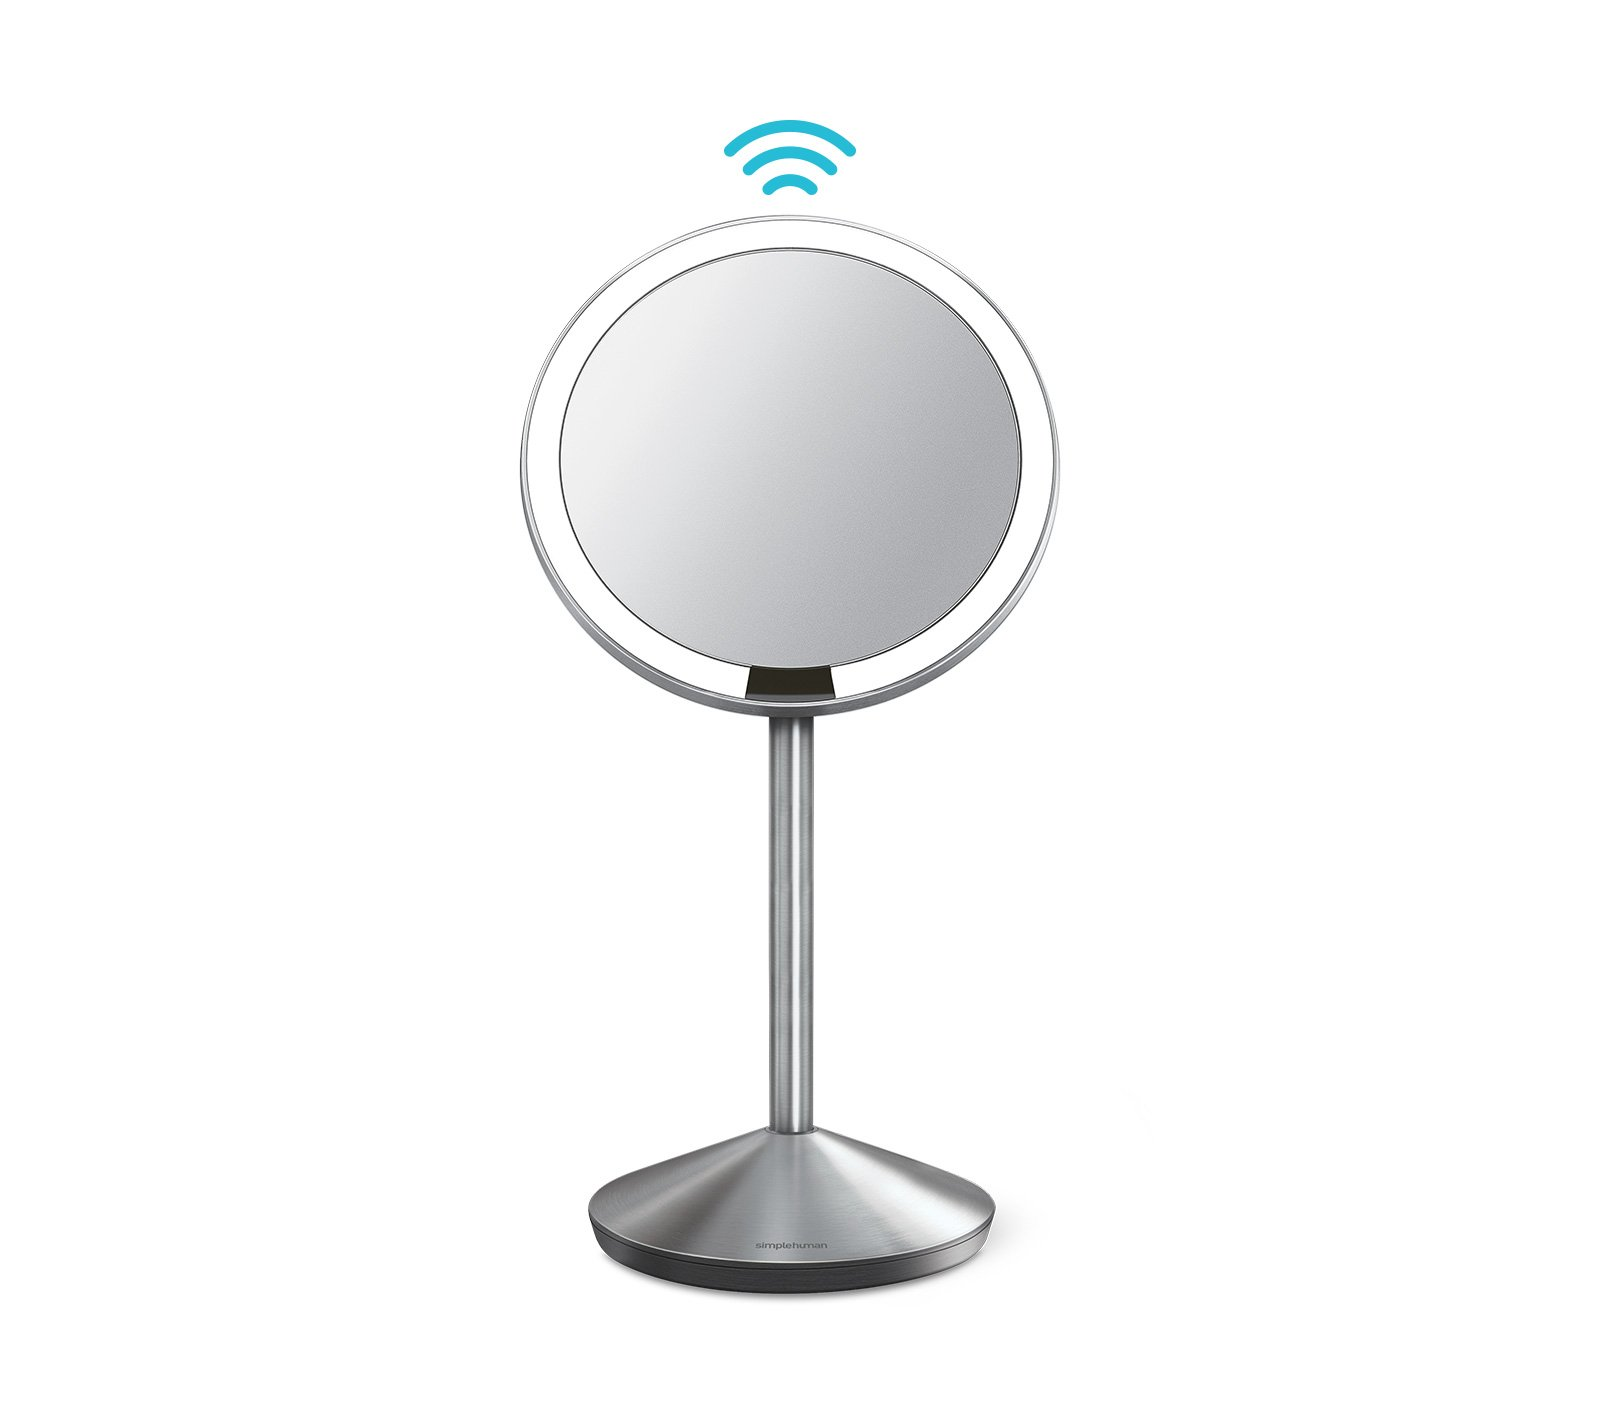 simplehuman 5 inch Sensor Mirror, Lighted Makeup Mirror, 10x Magnification by simplehuman (Image #2)